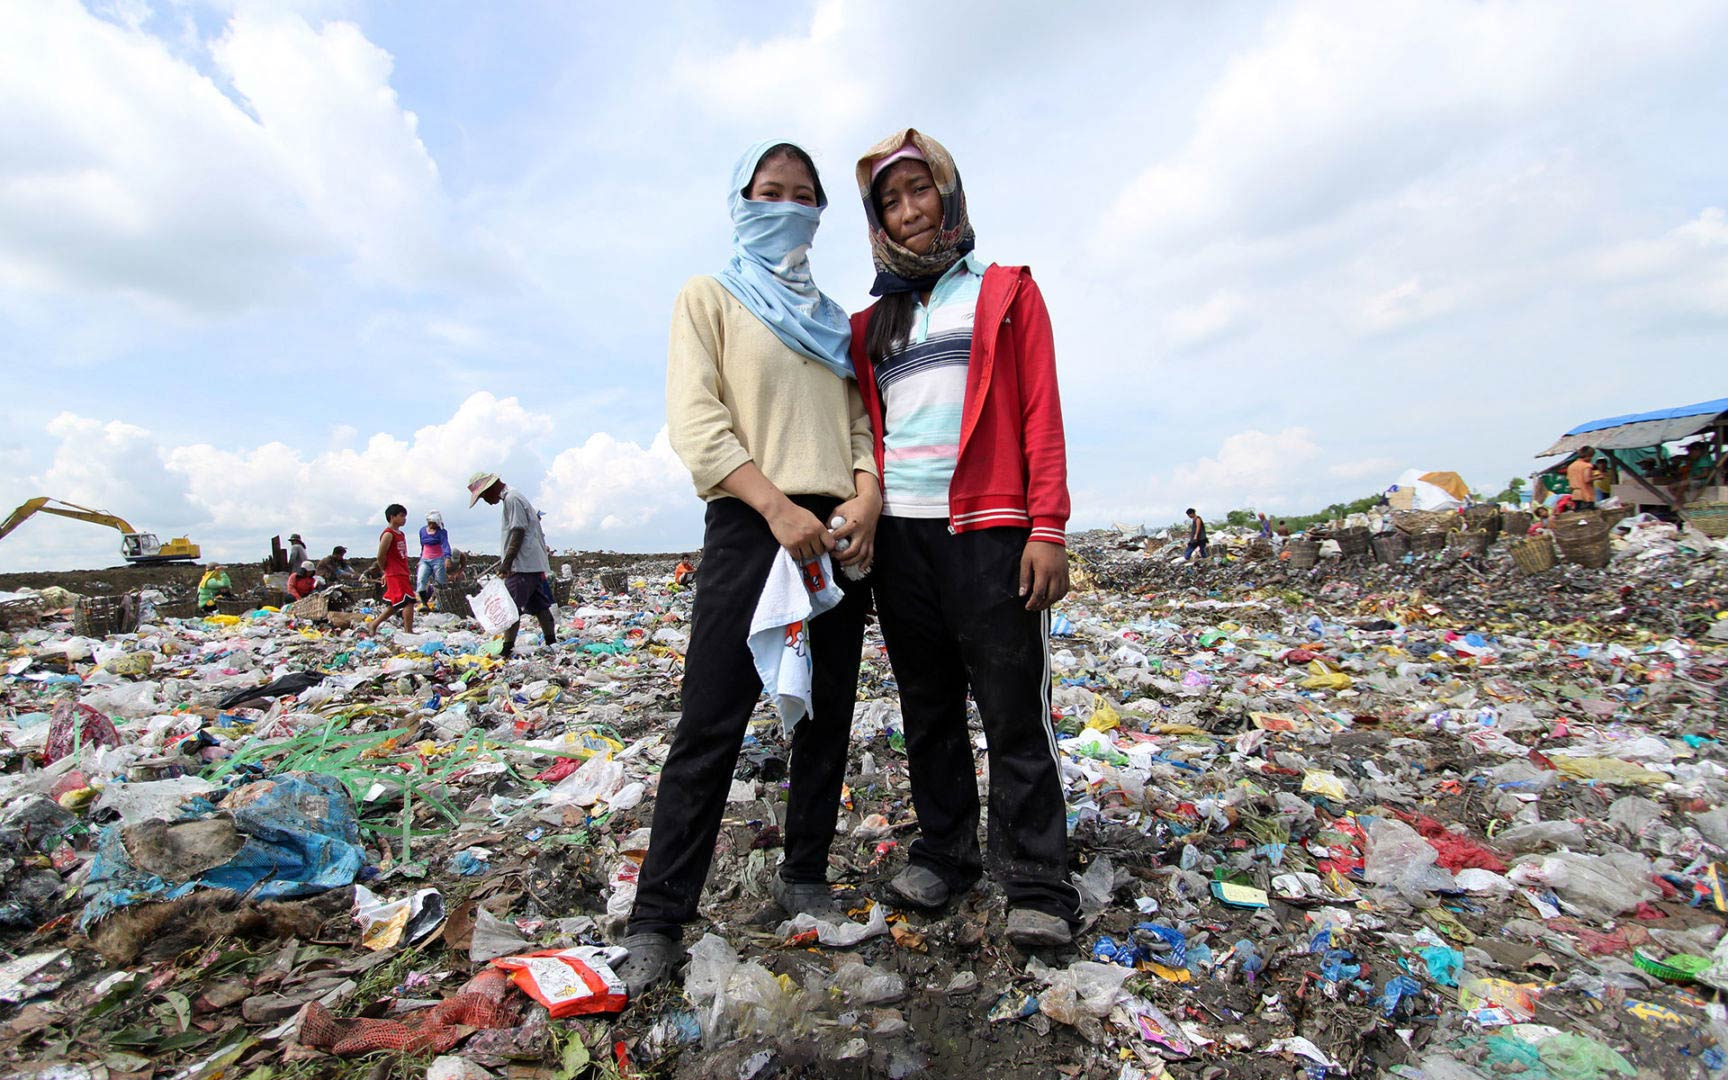 Sisters standing in the dump looking for items to use